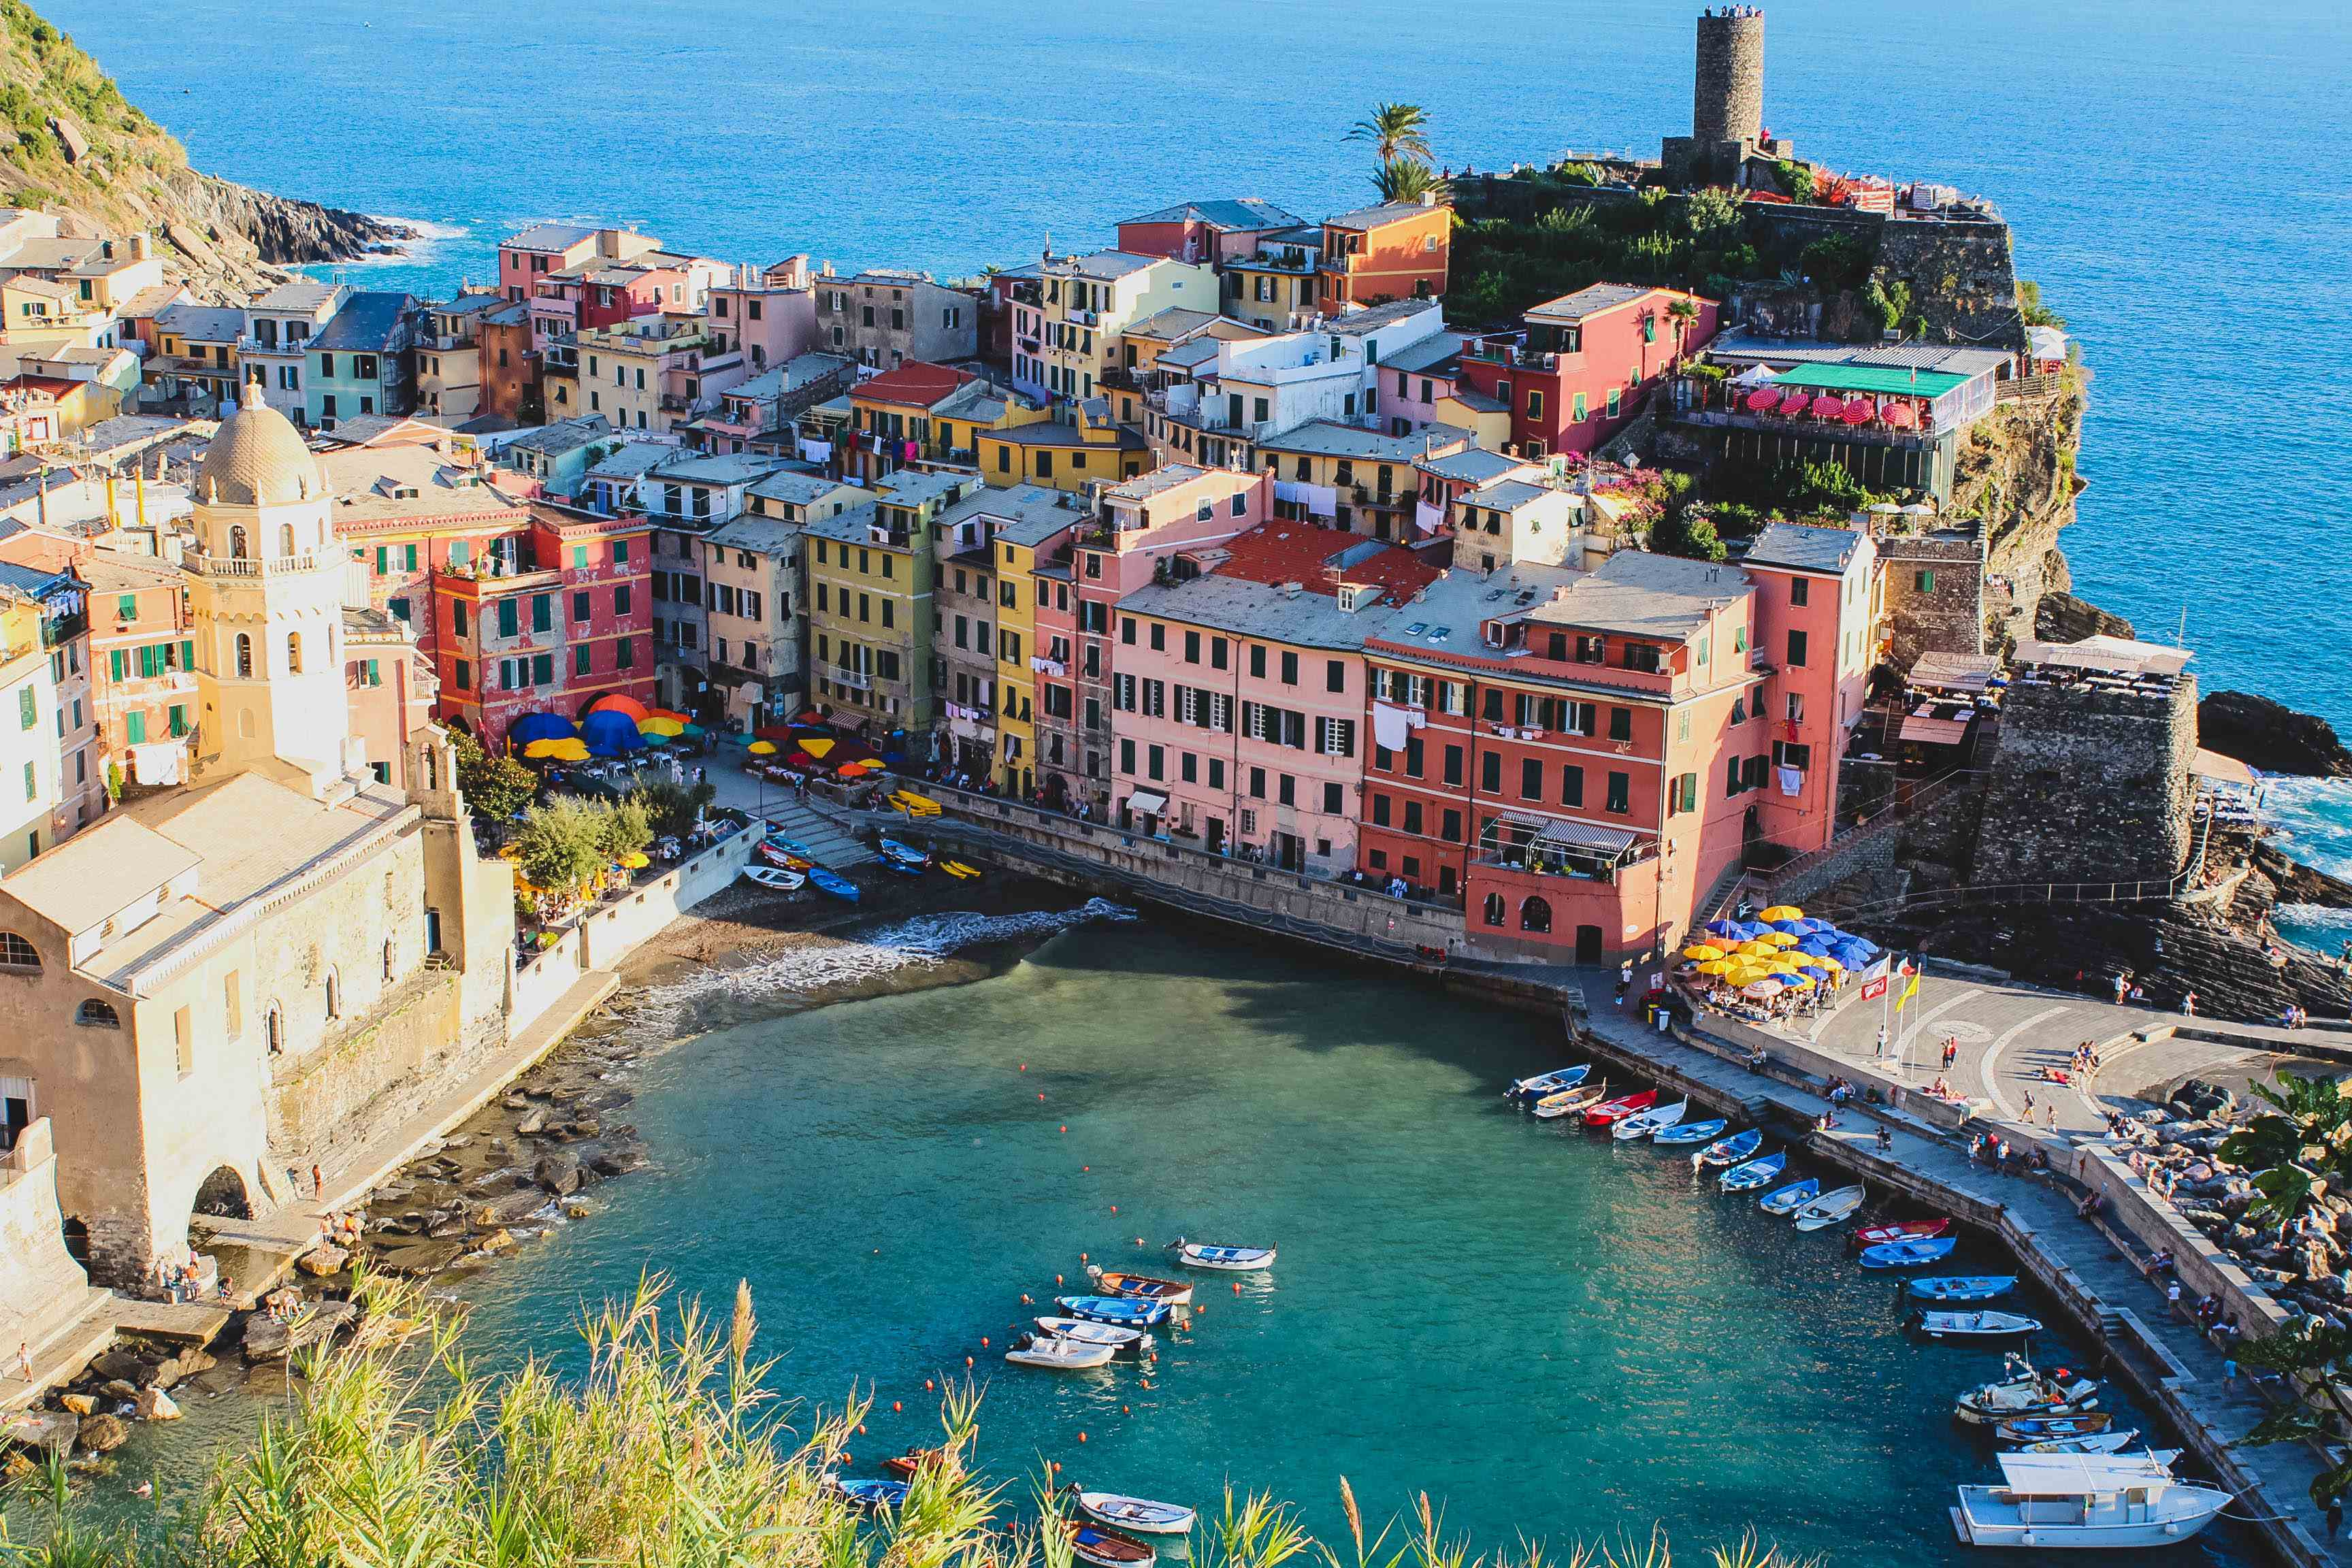 Vernazza Cinque Terre, Vernazza, Italy (Cinque Terre) - Barefoot Blonde by Amber Fillerup ...